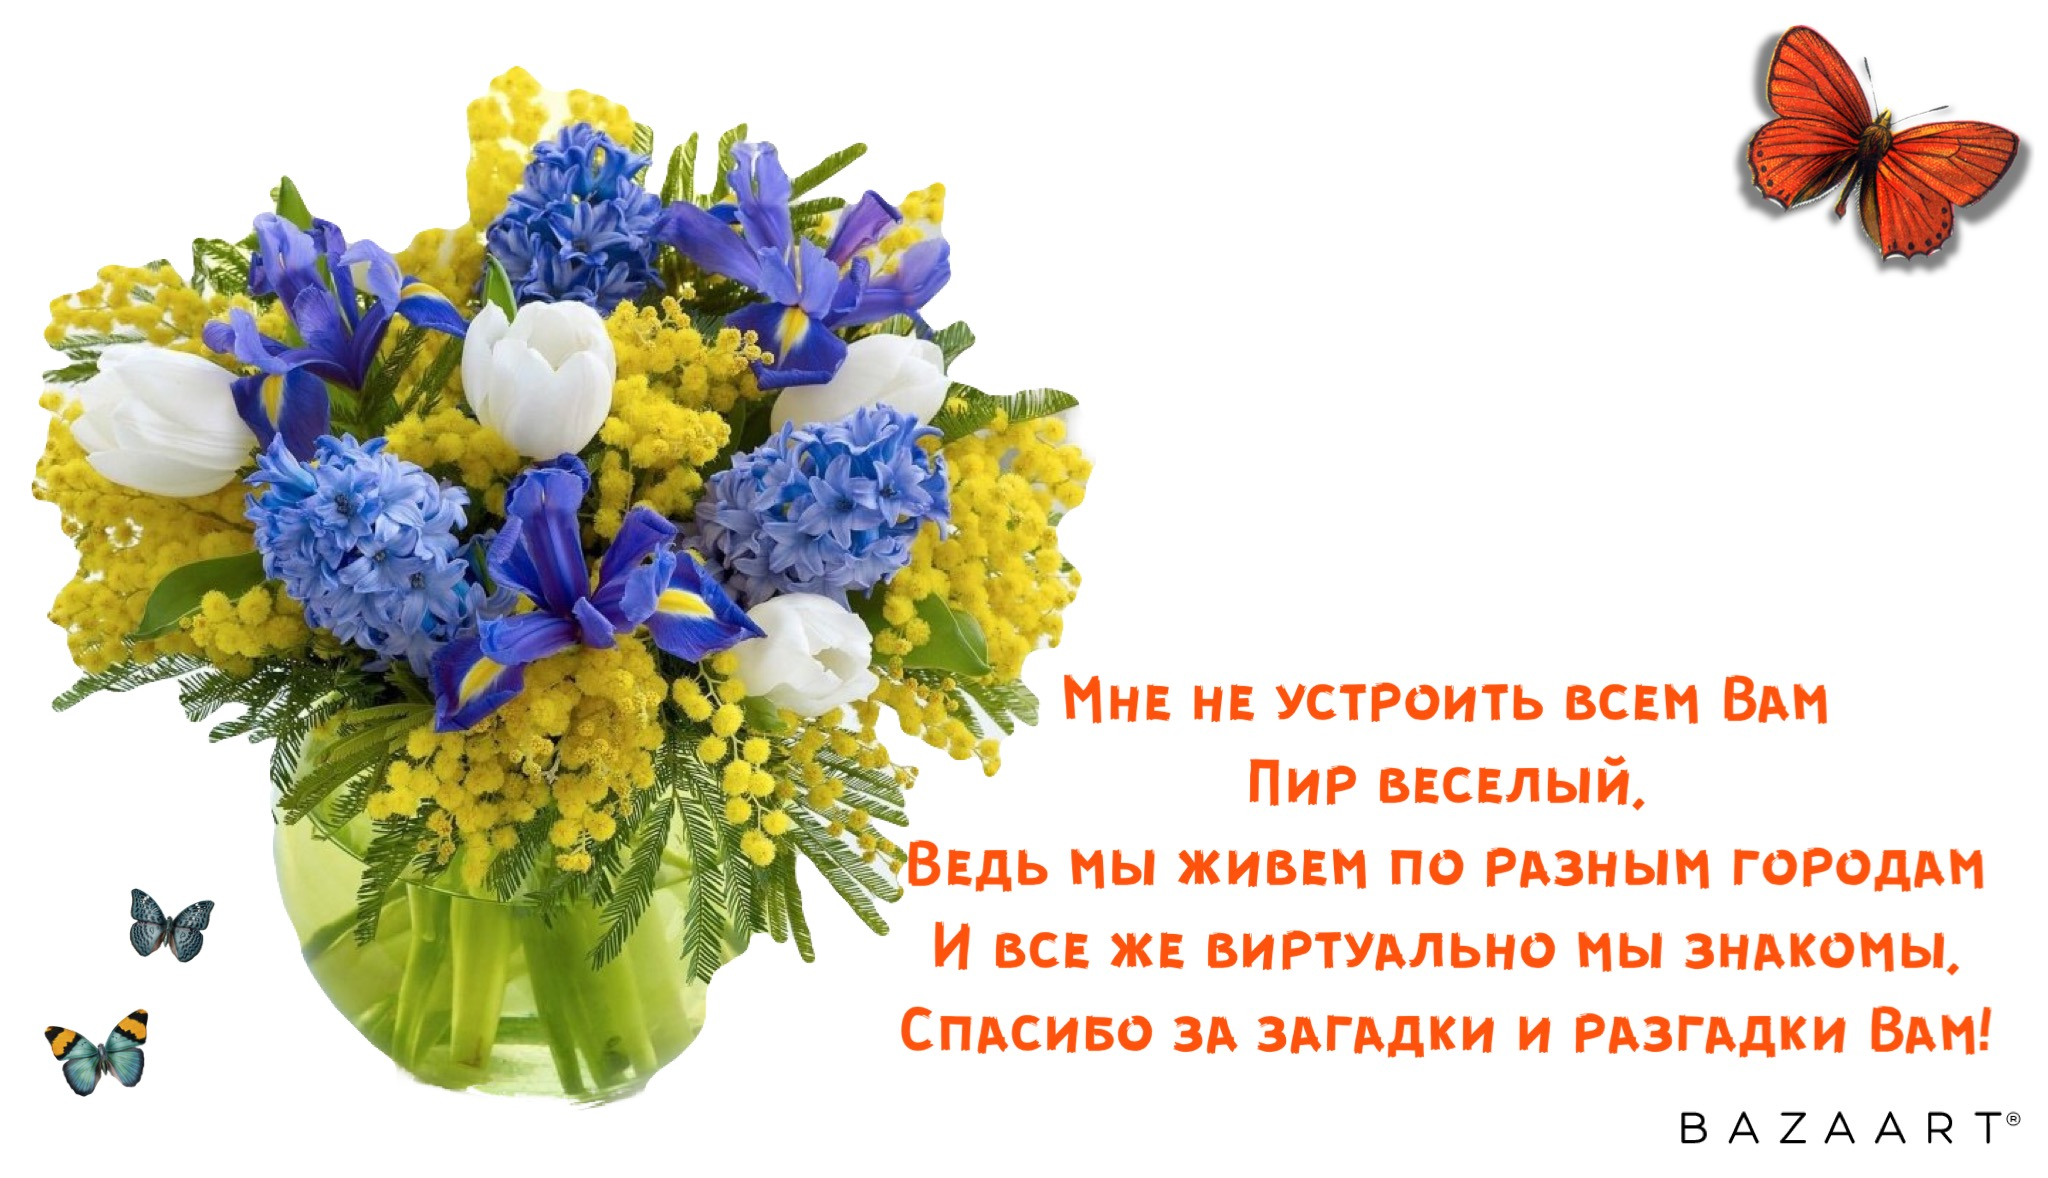 https://i6.imageban.ru/out/2019/04/11/266689e6462e8155028ad991082b2f37.jpg